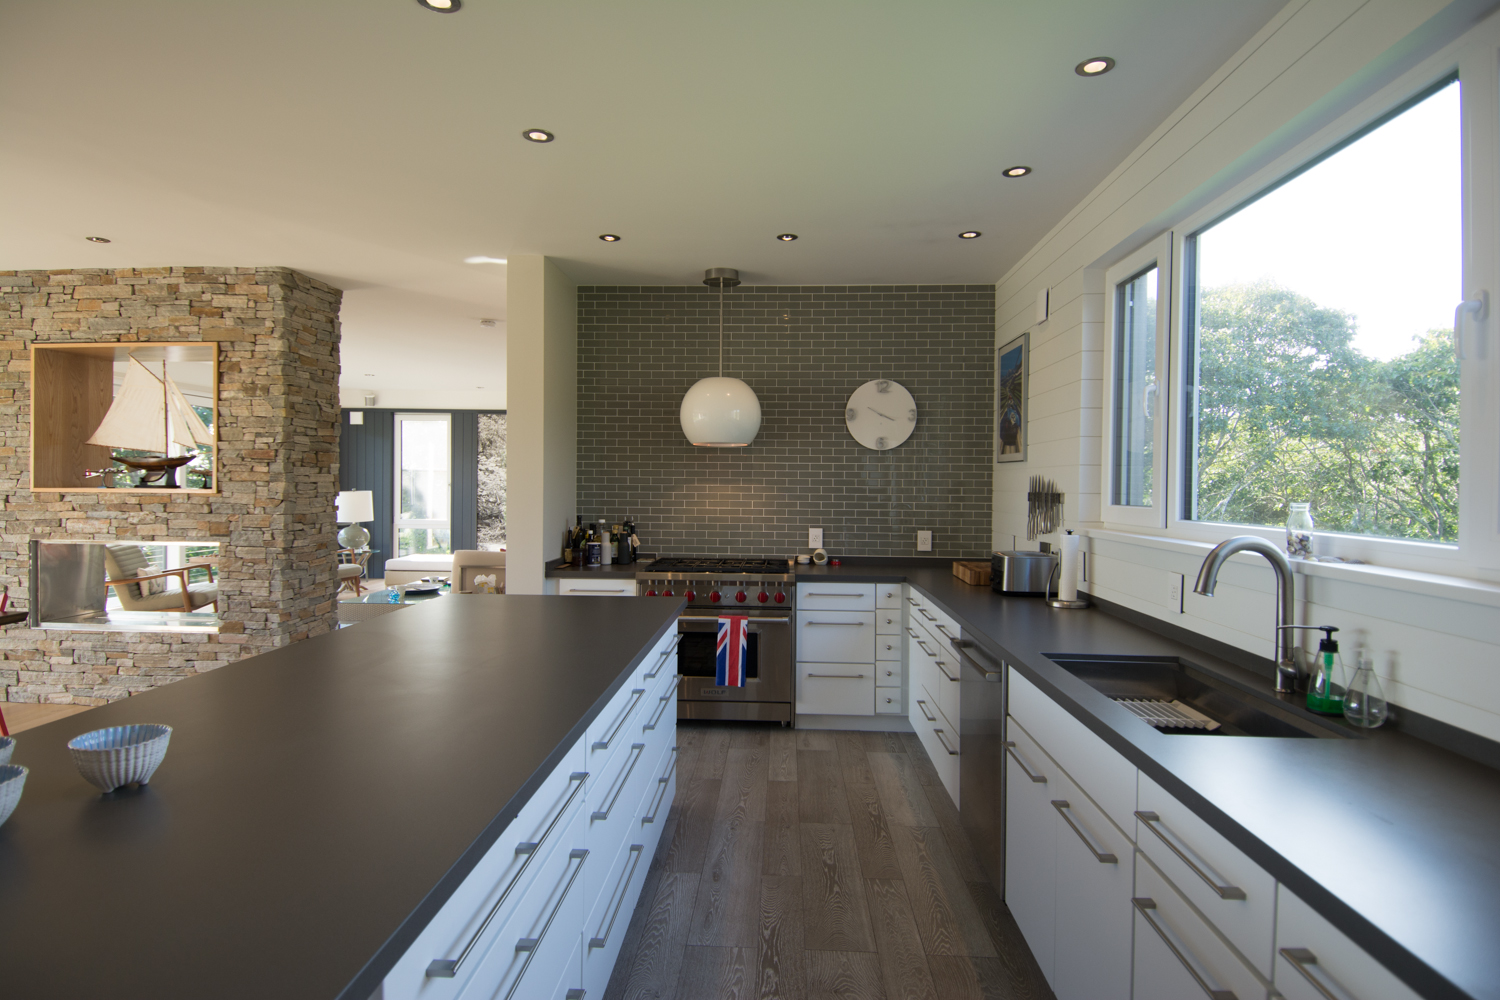 Modern galley kitchen with long window over the sink